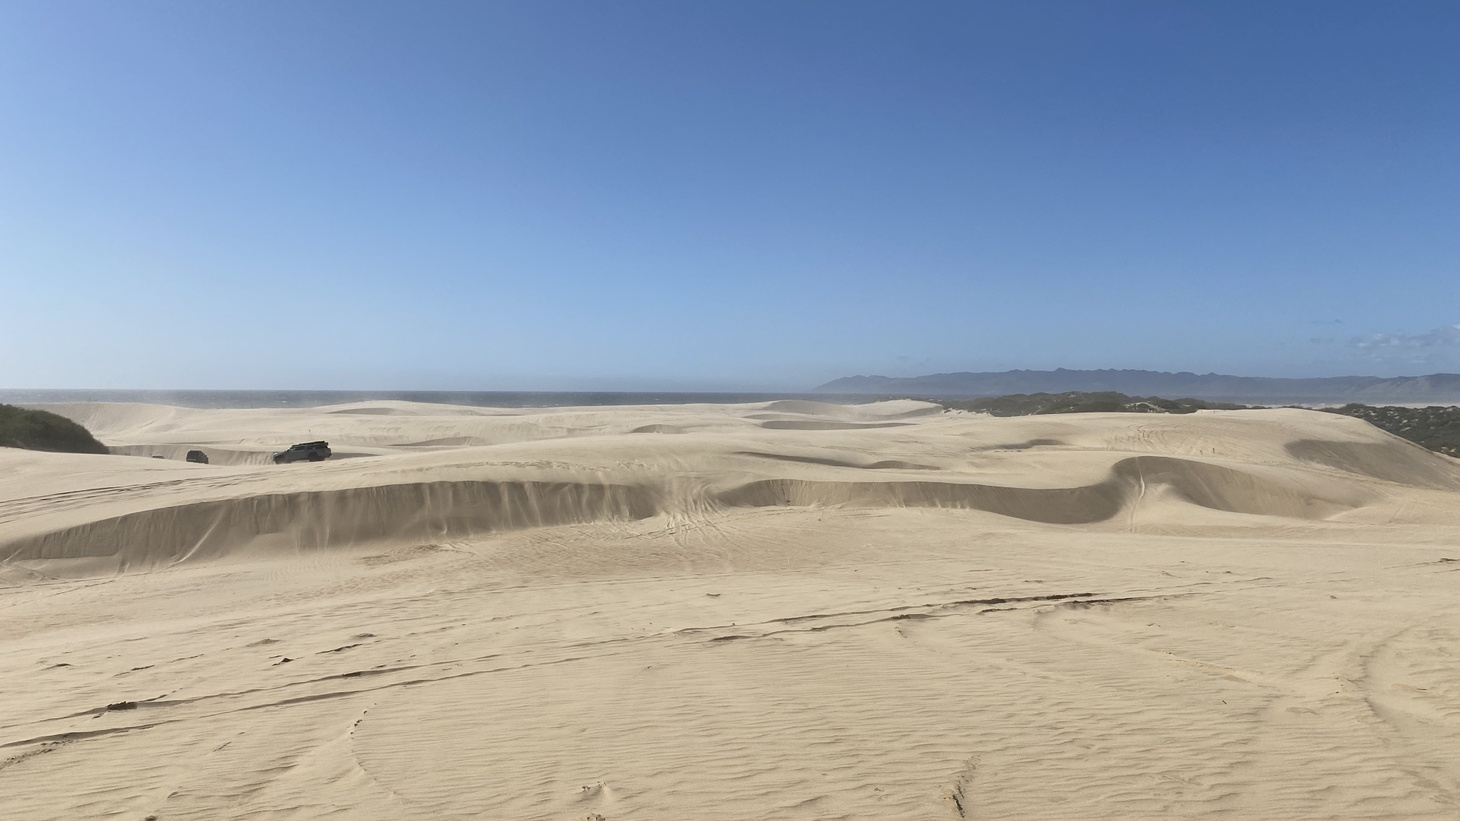 The Oceano Dunes have been an off-road attraction for more than half a century. While formal use of the dunes as an off-highway vehicle (OHV) playground goes back to the early 1980s, hitting unpaved back roads as a weekend activity took hold in the U.S. after World War II. One off-road group, the Dune Riders, was founded in 1959 and gave tours of the sandy expanse before the area was a park.